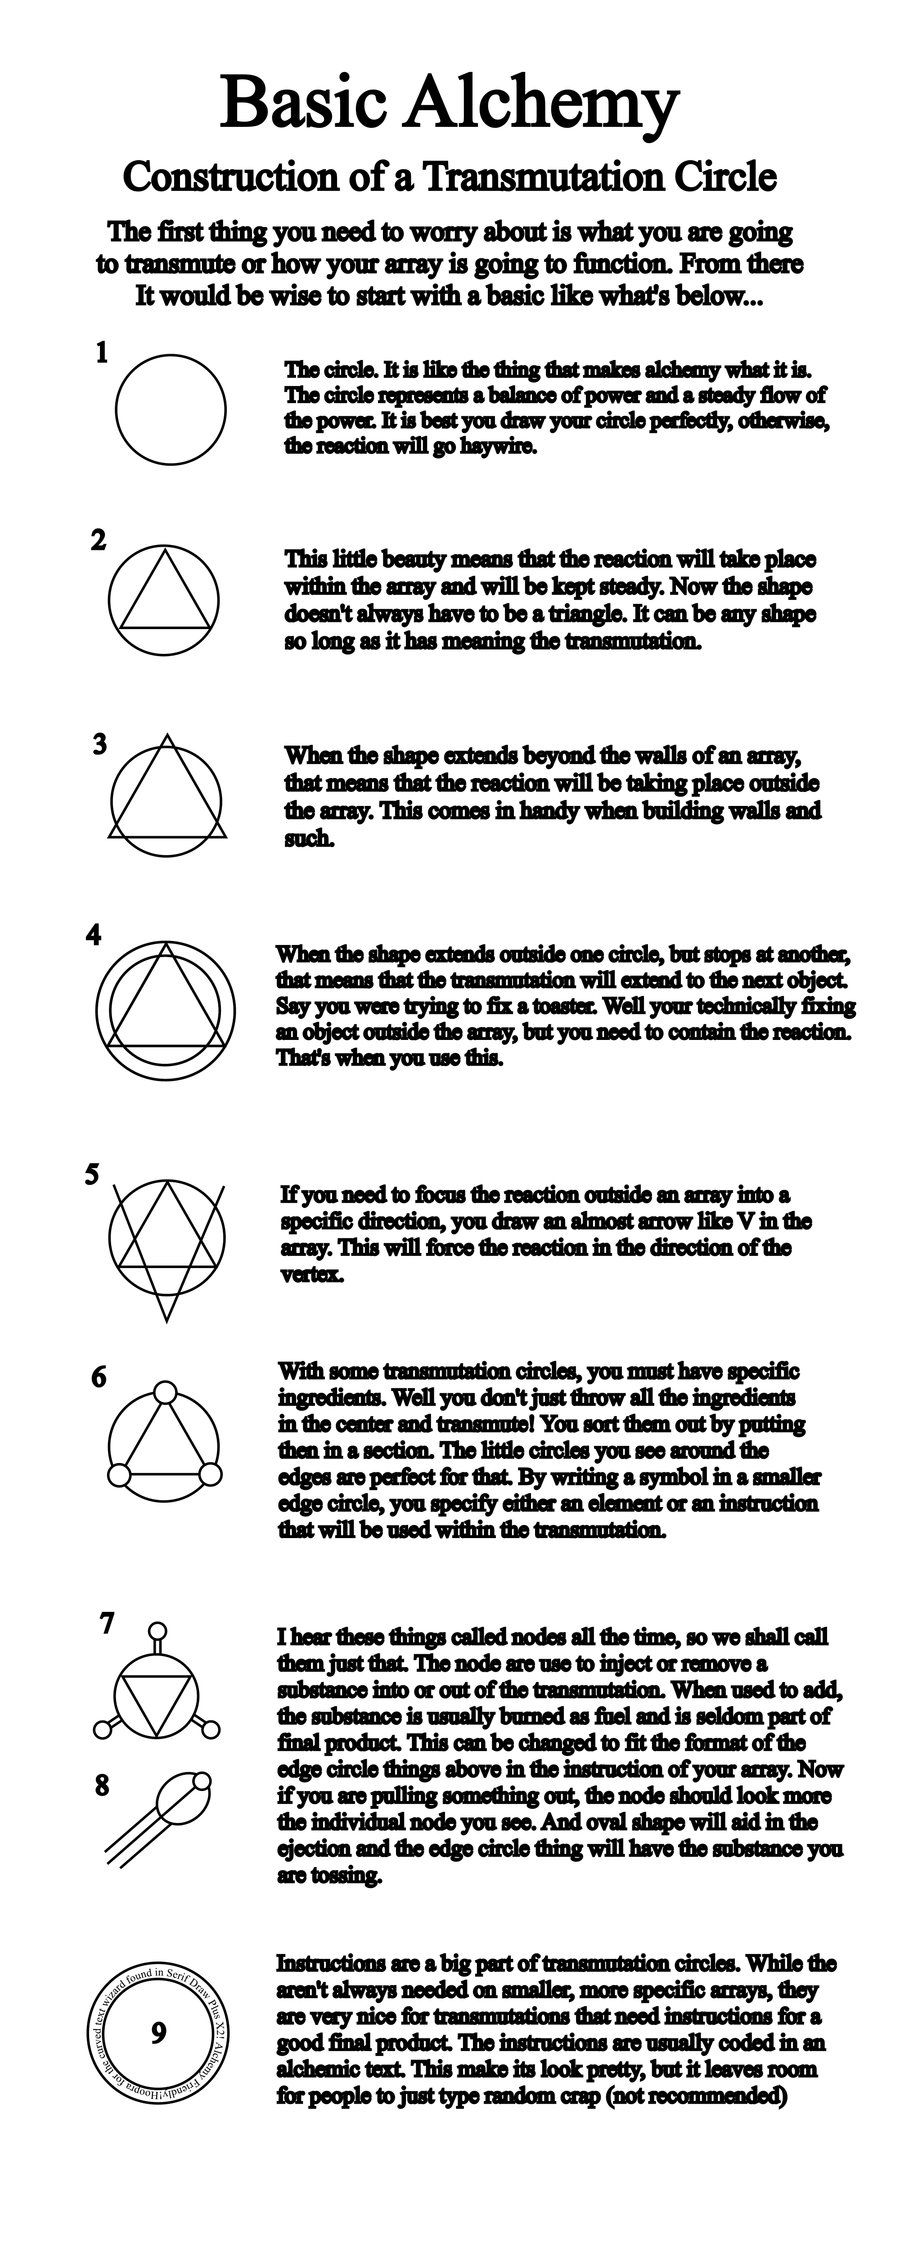 Transmutation circle tutorial by notshurlyiantart fma transmutation circle tutorial by notshurlyiantart biocorpaavc Images